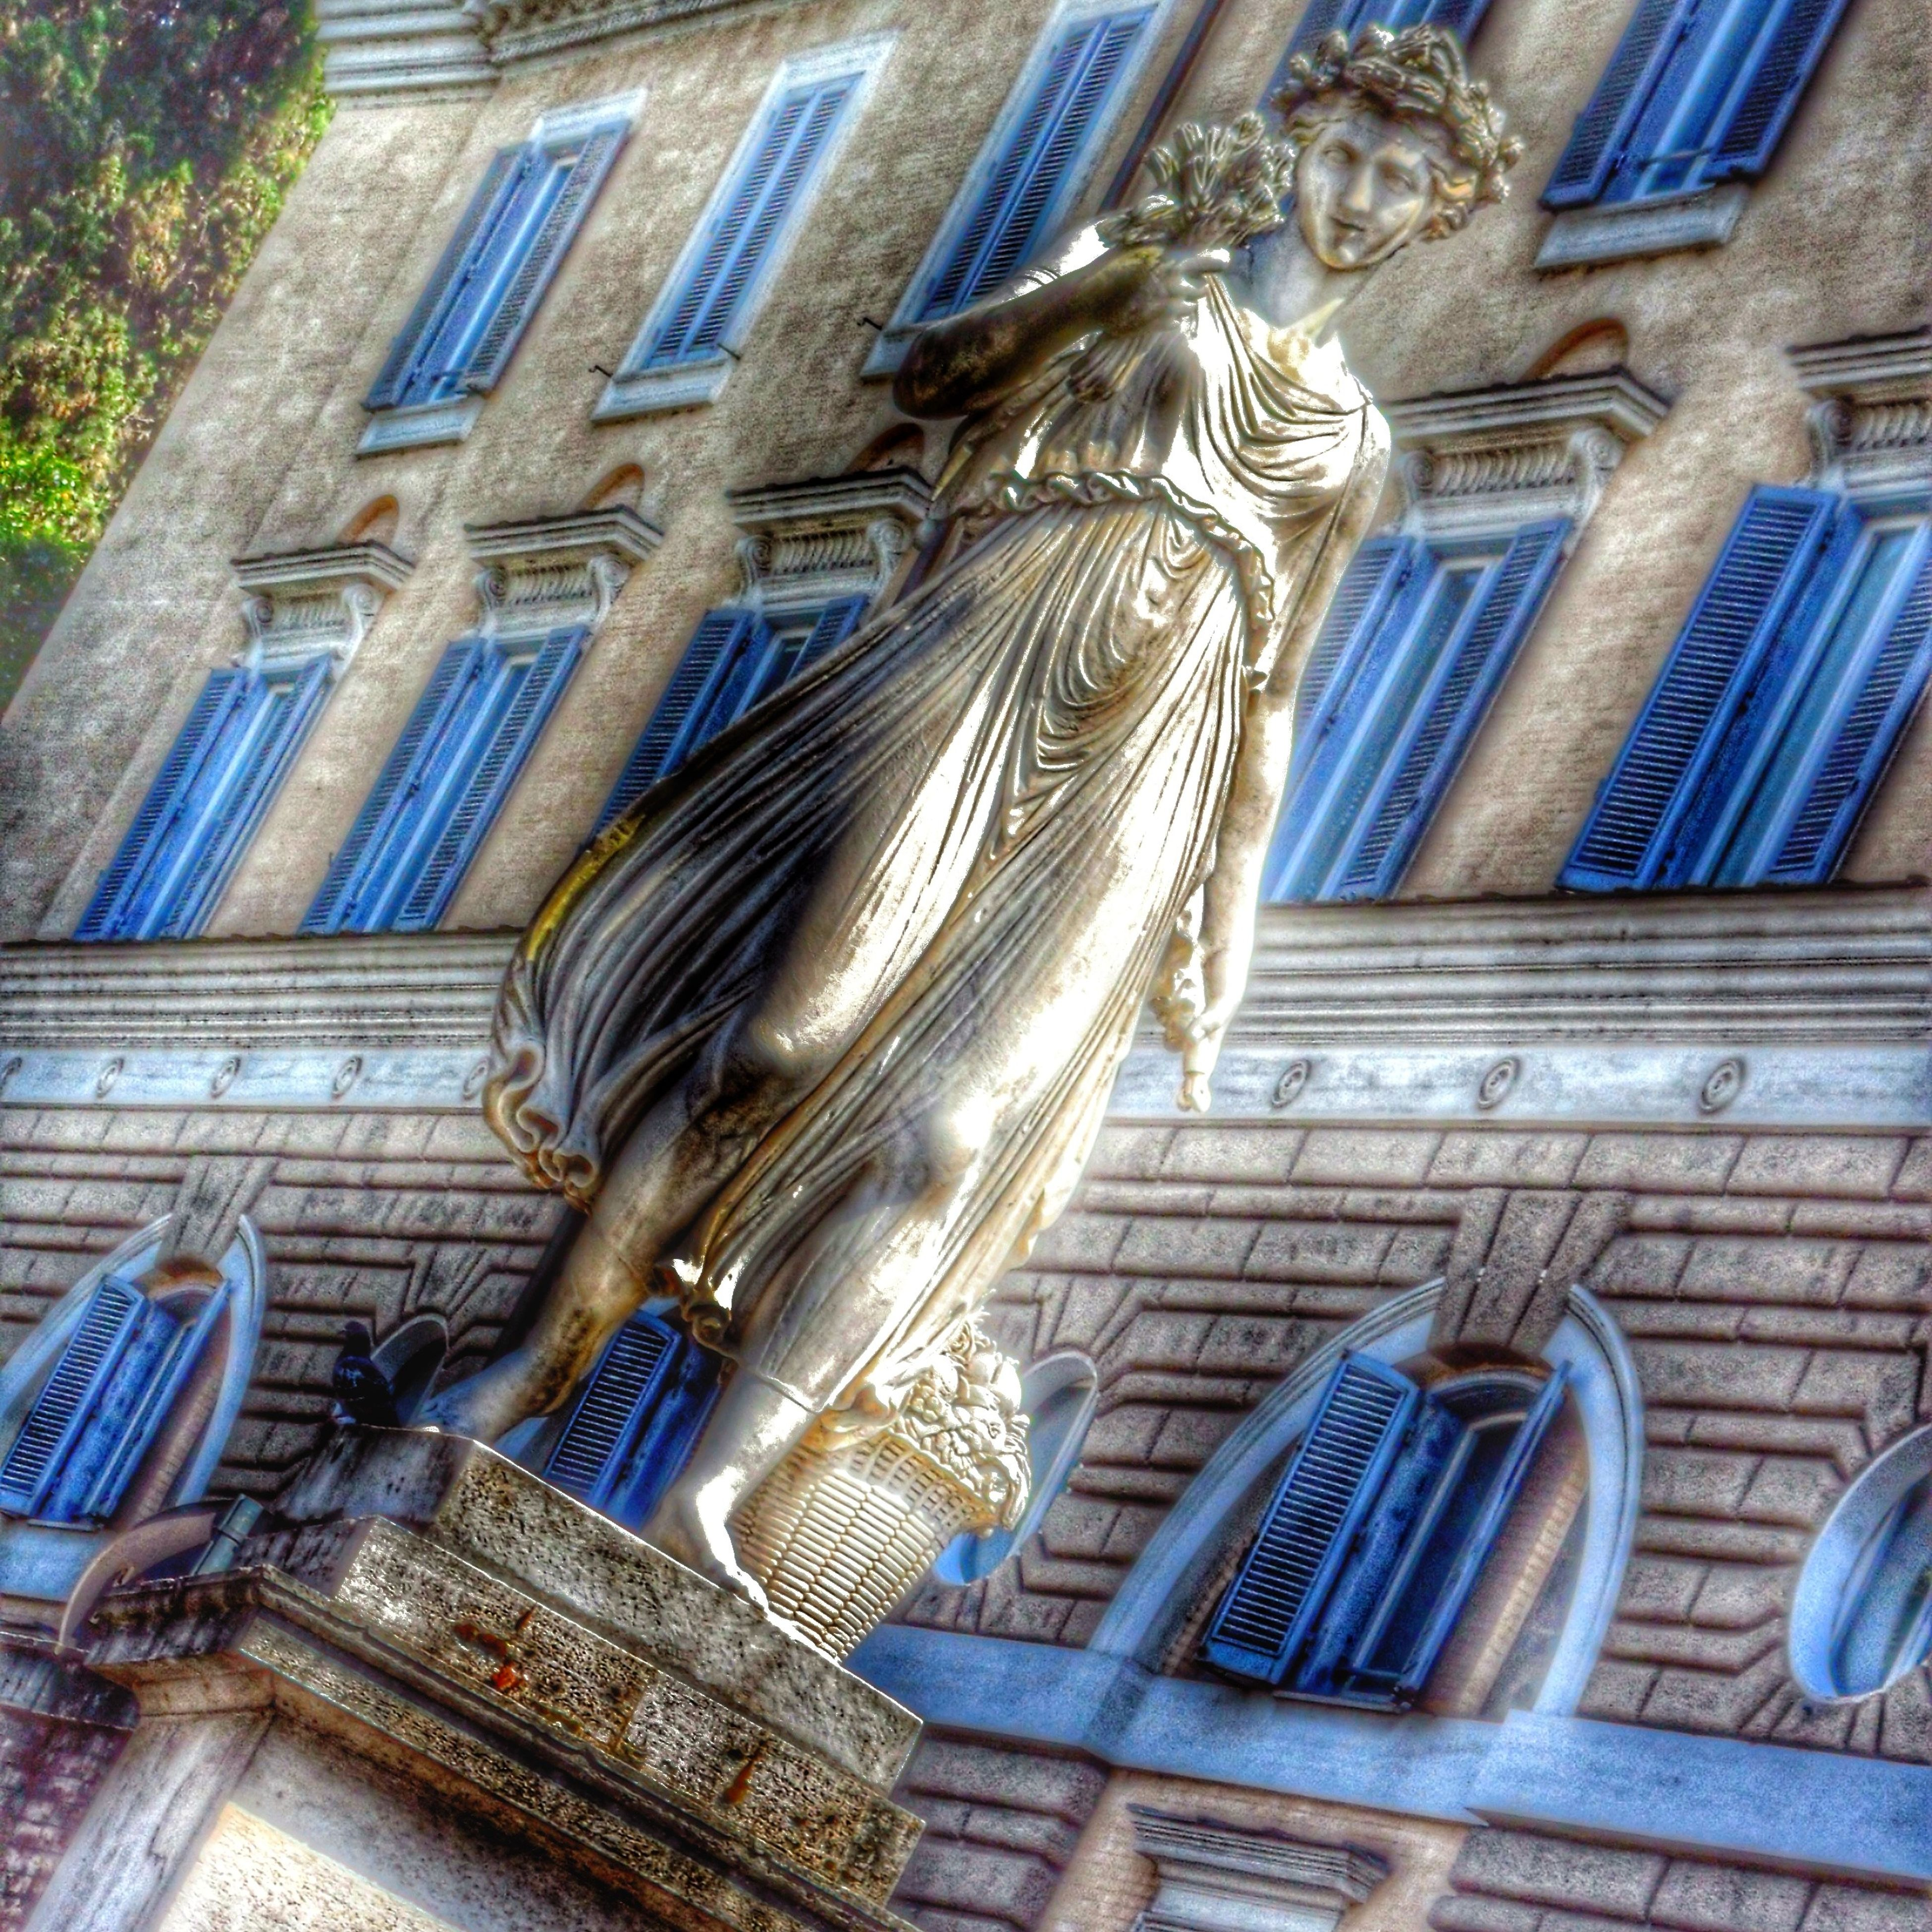 architecture, building exterior, built structure, low angle view, art and craft, building, art, statue, human representation, city, sculpture, window, creativity, day, blue, outdoors, no people, residential building, facade